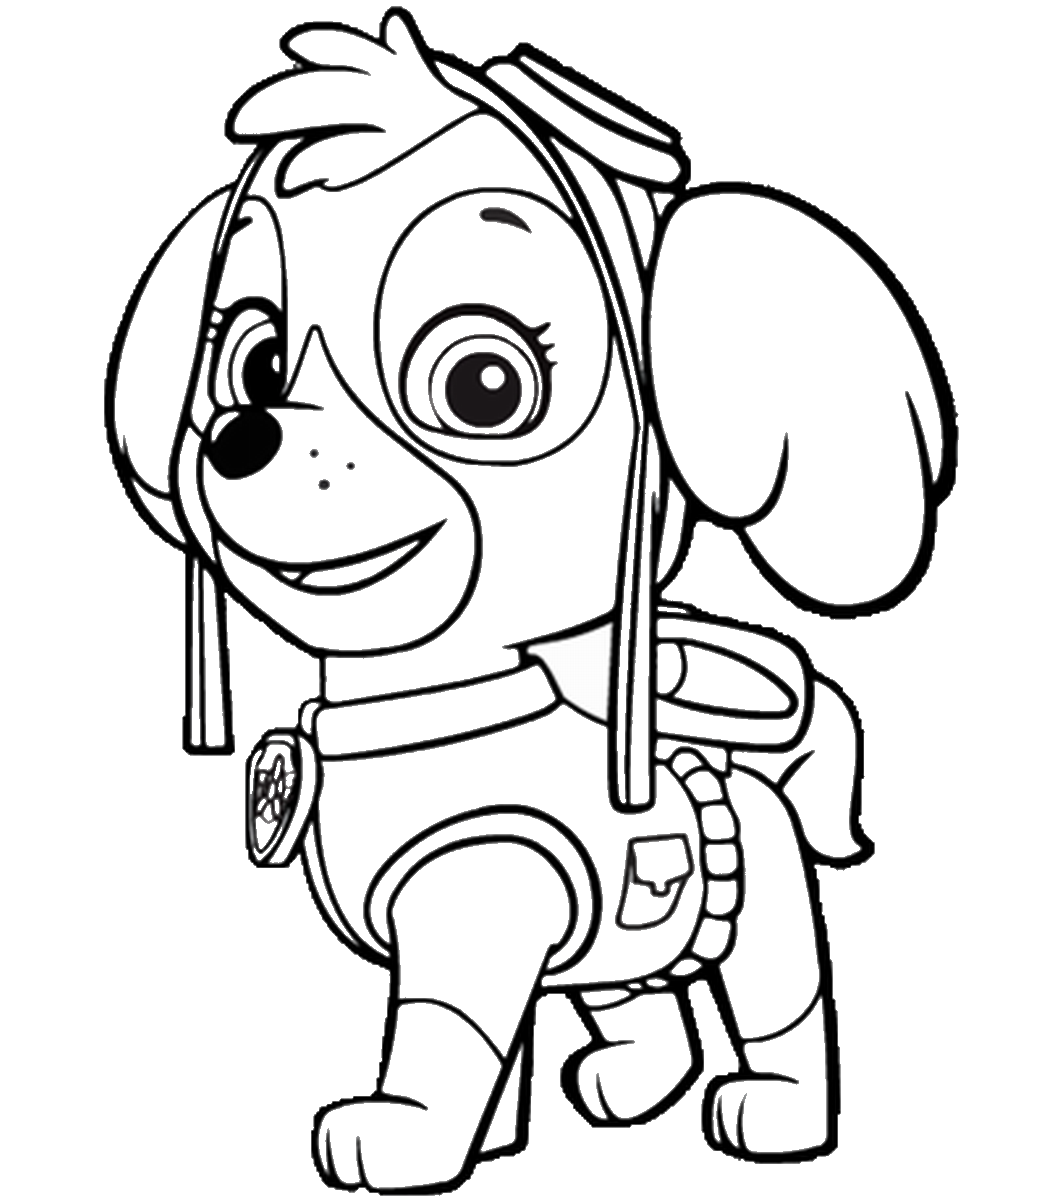 Coloring Pages Paw Patrol : Free coloring pages of paw patrol symbol